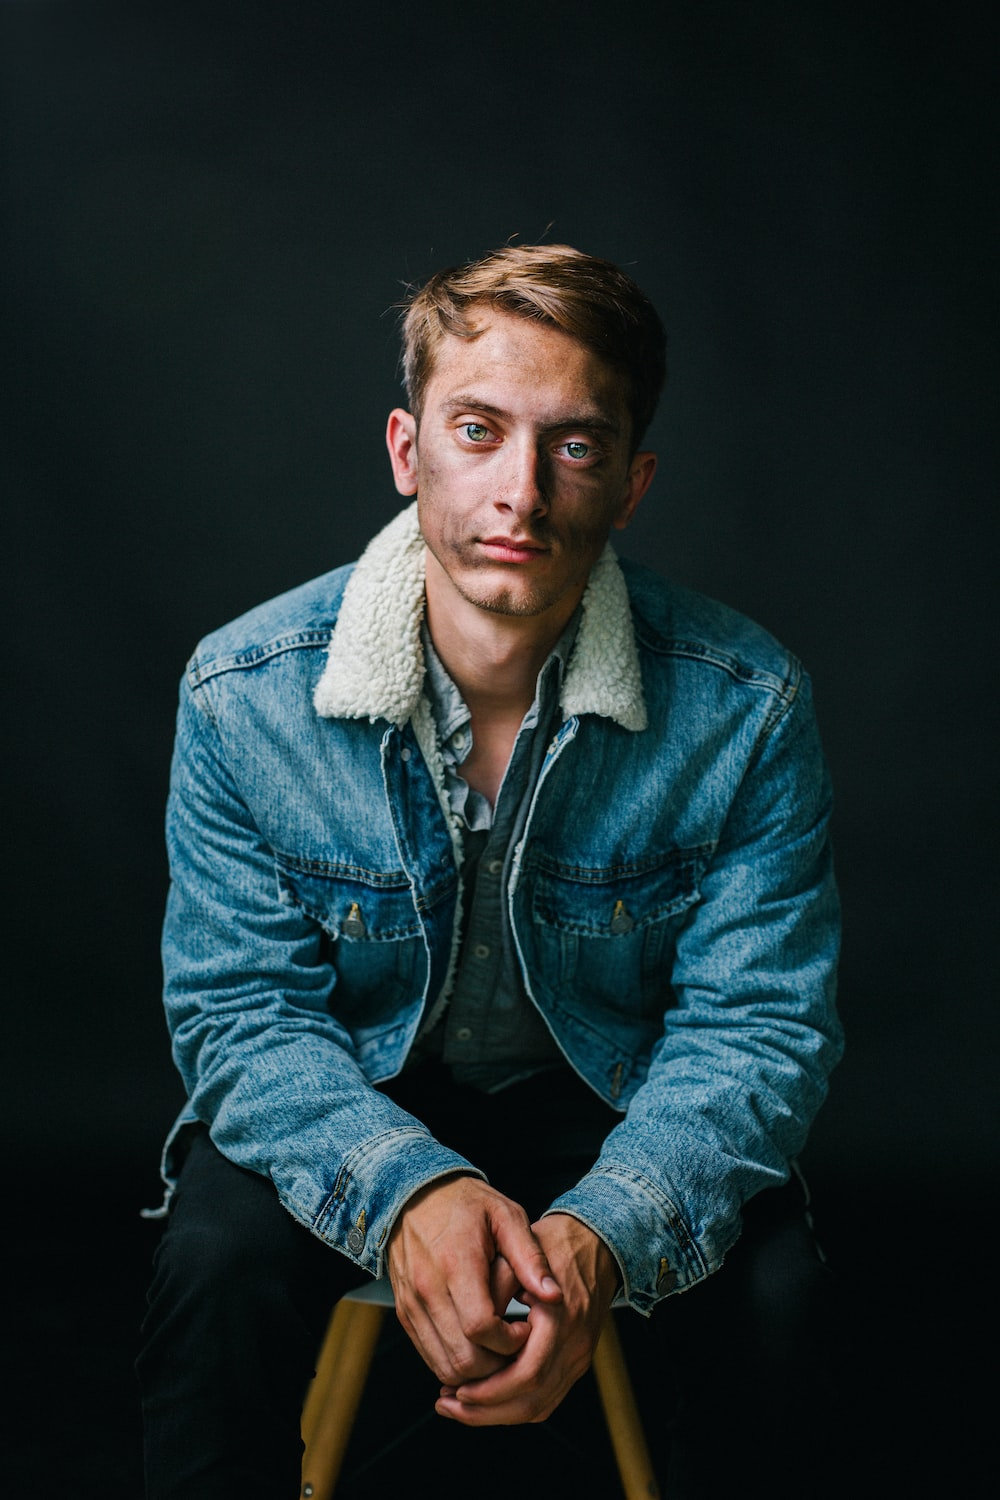 man wearing blue denim jacket